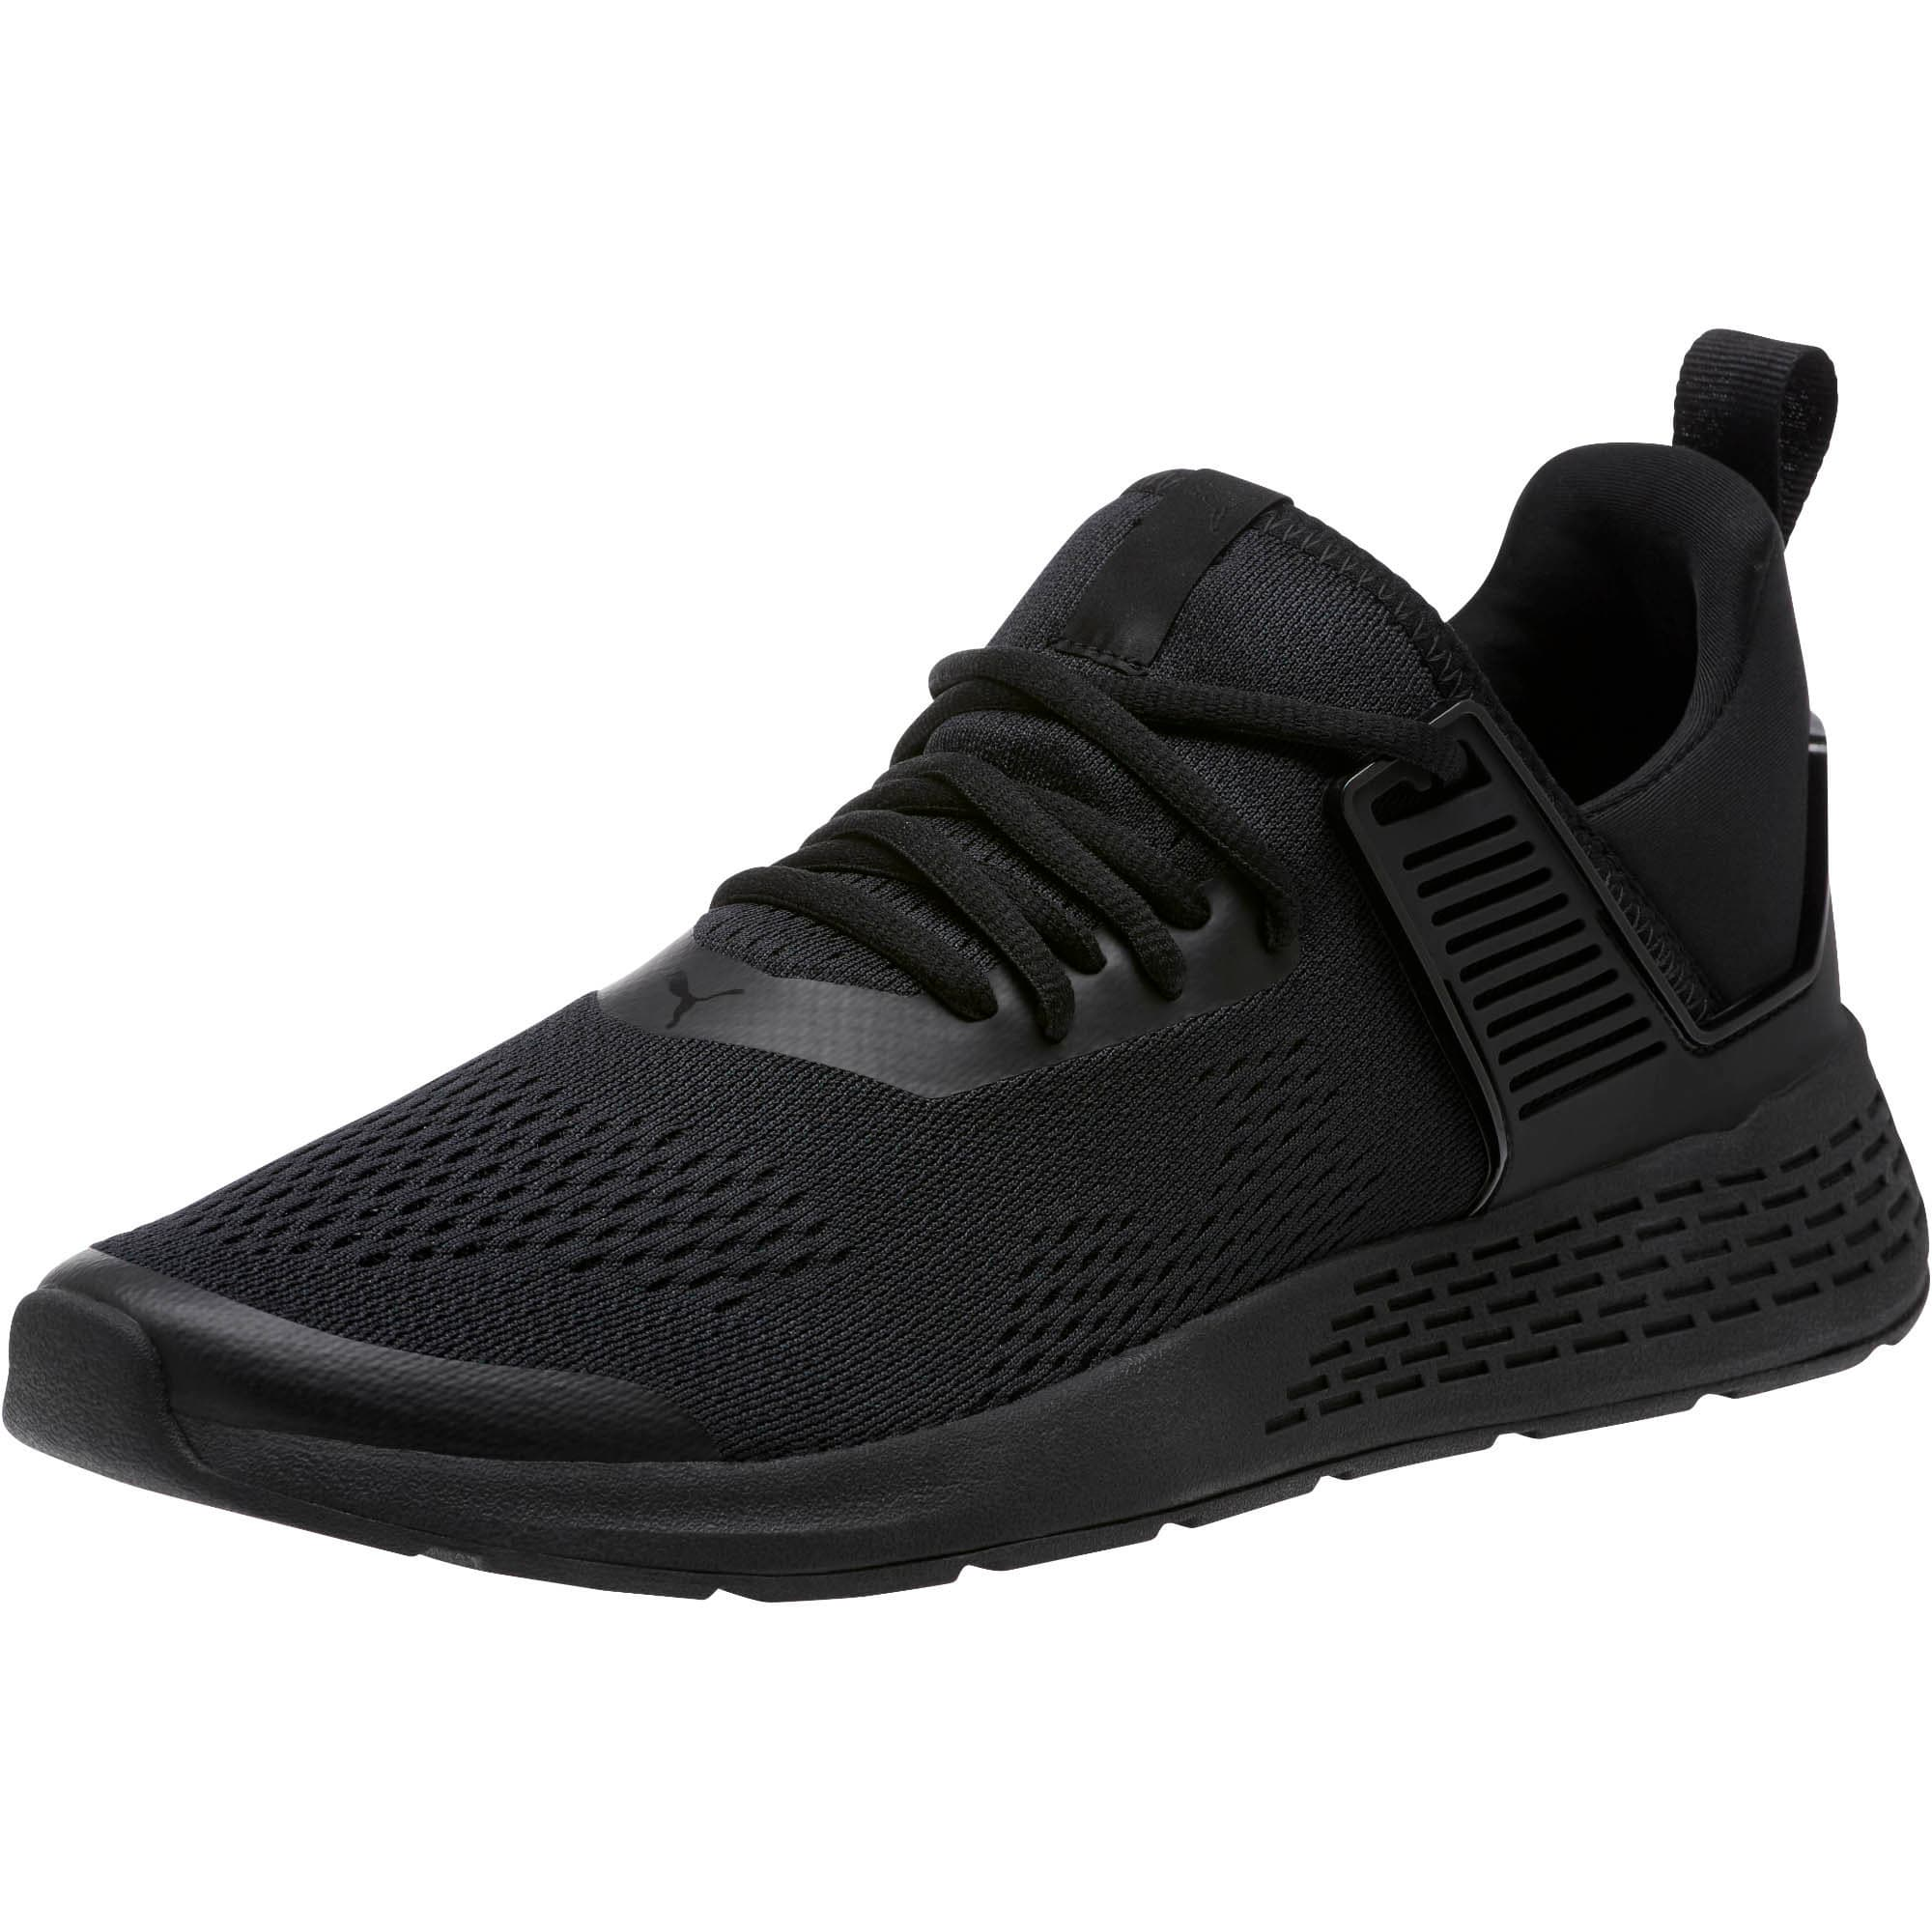 Thumbnail 1 of Insurge Eng Mesh Sneakers, Black-Black-Black, medium